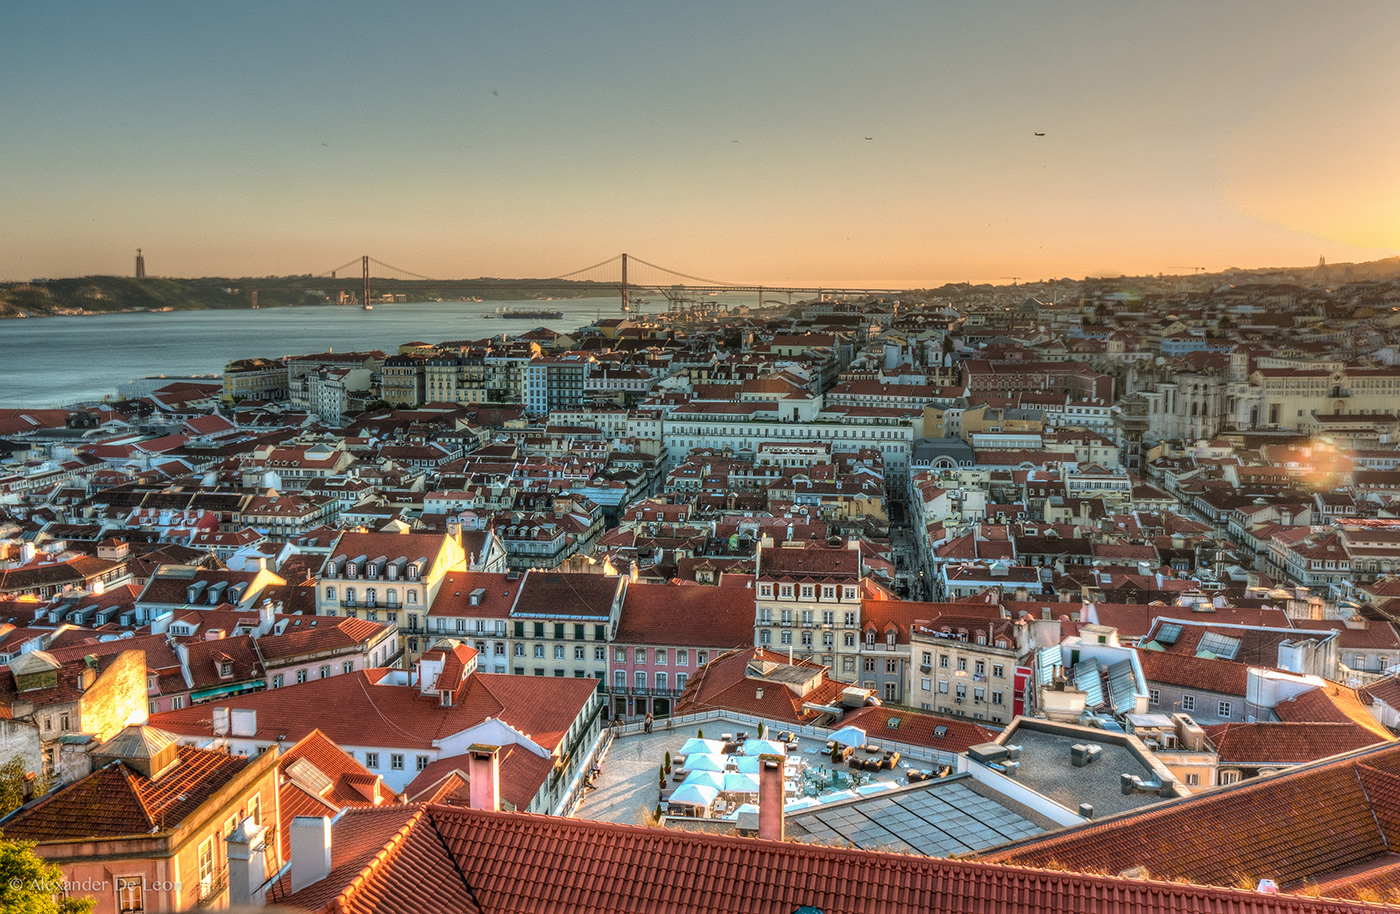 Panorâmica da cidade de Lisboa, Portugal. A Panoramic of the city of Lisbon, Portugal.